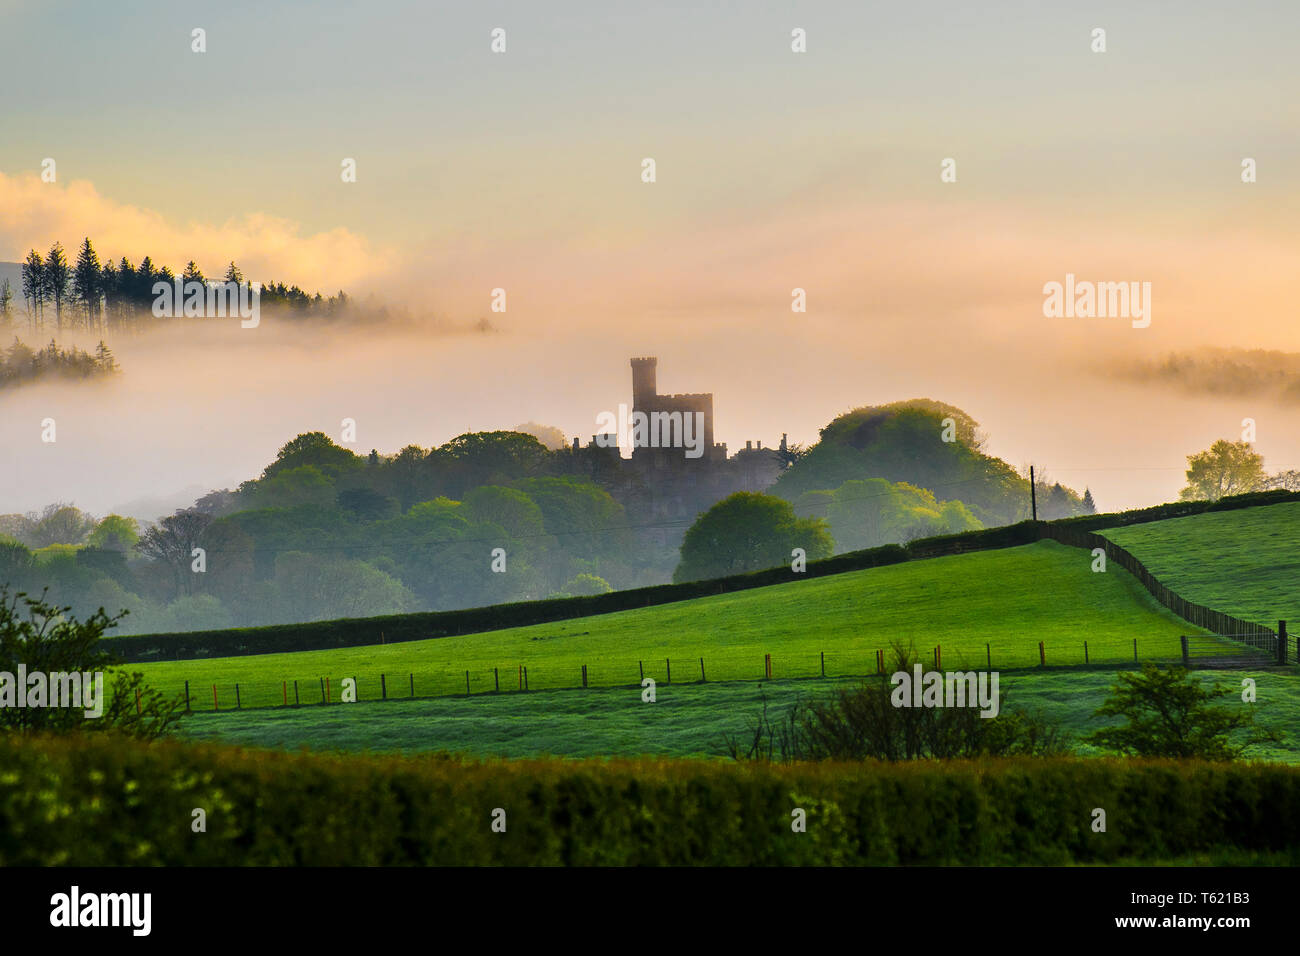 Hornby, Lancaster, UK. 28th April, 2019. UK Weather. Misty, damp hazy morning over Hornby Castle and the limed fields of rural Lancashire. Hornby Castle is a country house, developed from a medieval castle, standing to the east of the village of Hornby in the Lune Valley, Lancashire. It occupies a position overlooking the village in a curve of the River Wenning. Credit: Media World Images/Alamy Live News - Stock Image